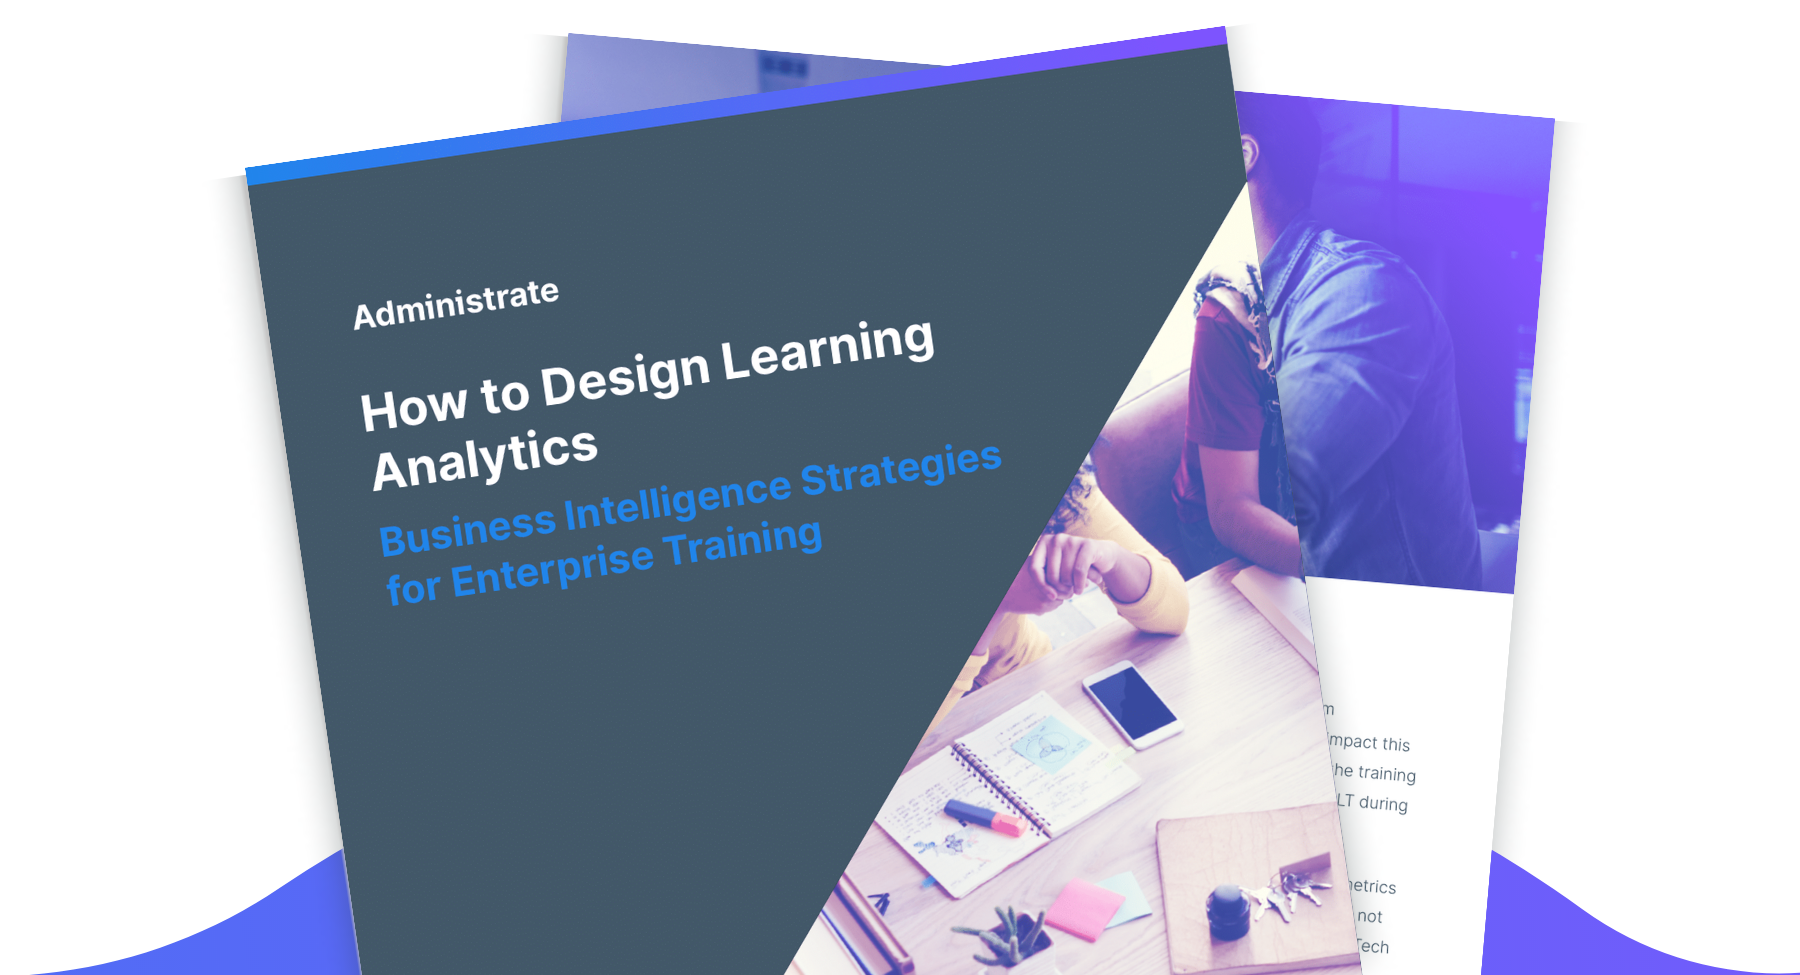 Discover how your team can start designing learning analytics that lead to data-driven decision making with this guide